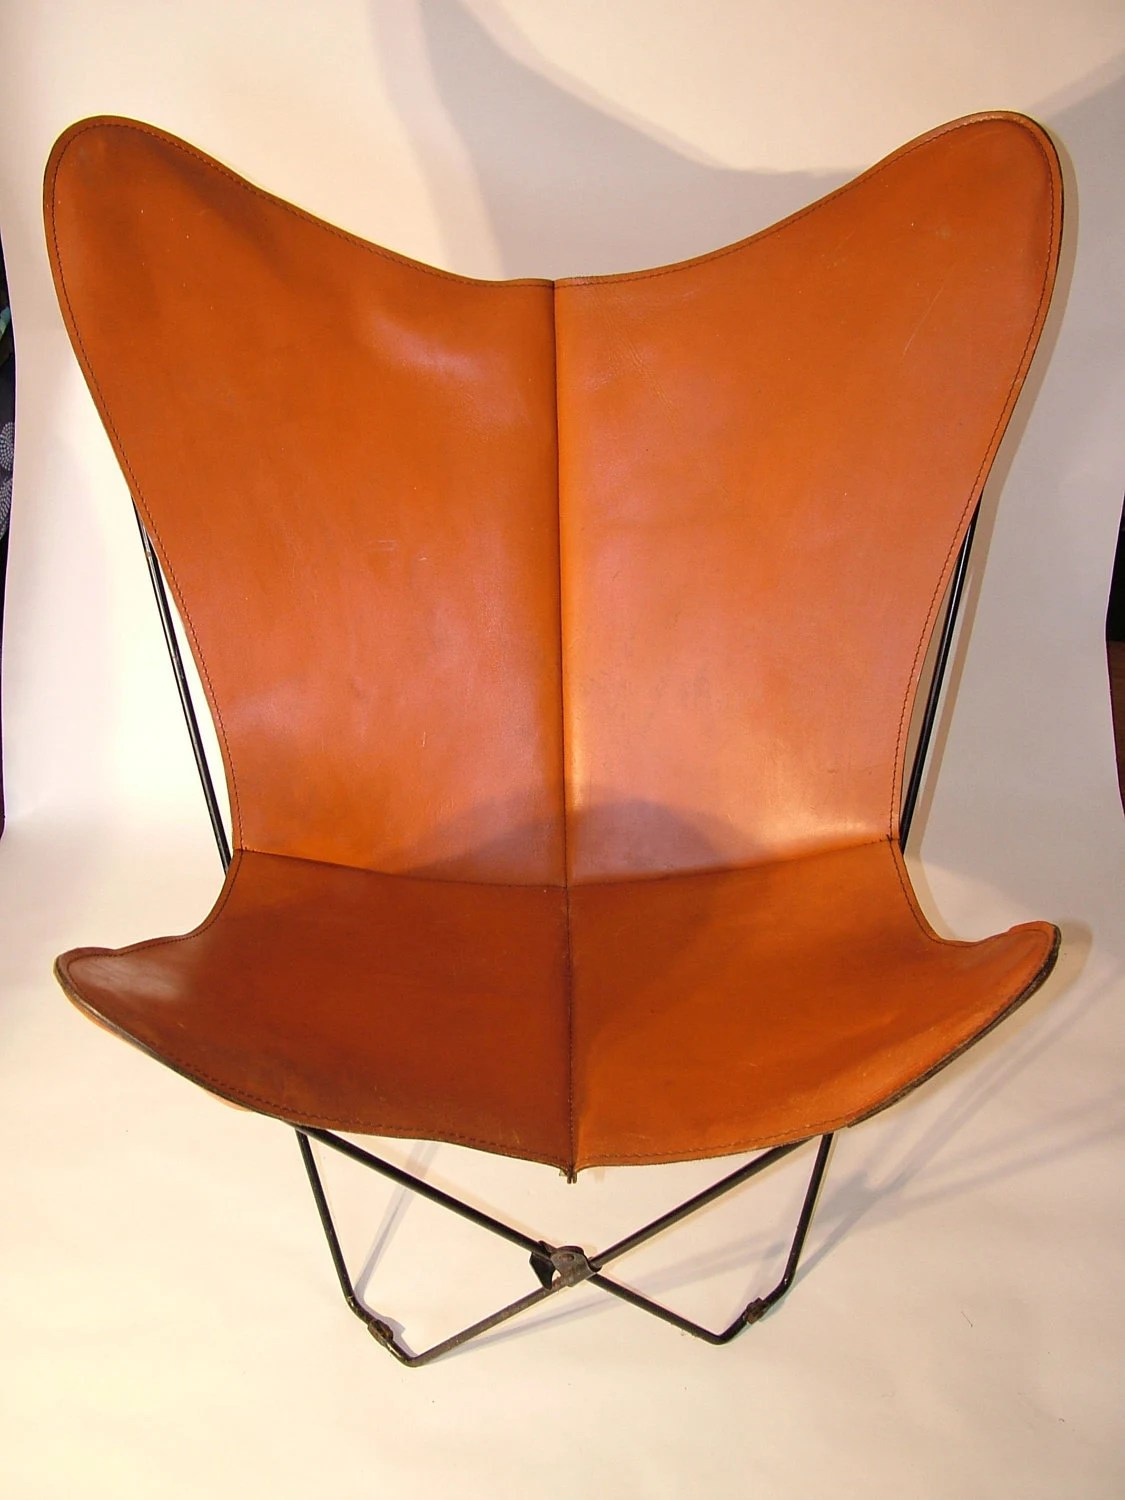 Brown Leather Butterfly Chair 1960 39s Rare Vintage Retro Leather Butterfly Chair Cover